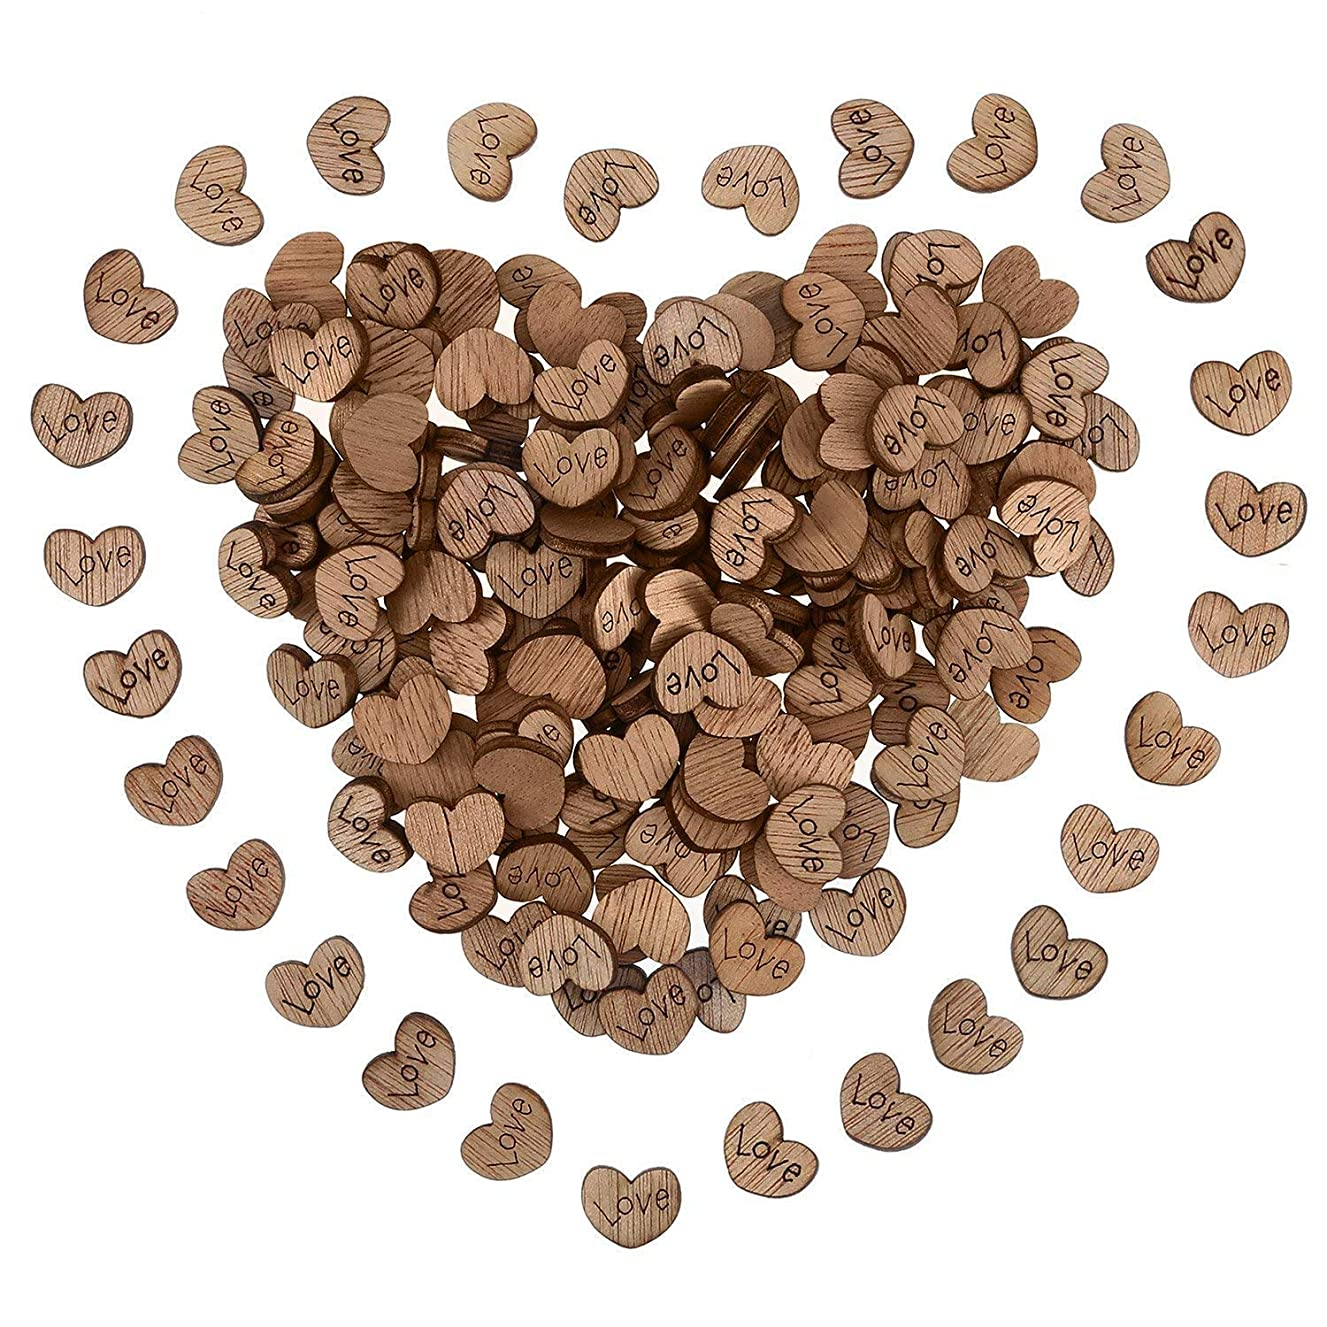 Benvo 300 Rustic Hearts Wooden Love Hearts Slices for Wood Table Confetti, Wedding Table Scatters, Embellishments, Invitations, Rustic Weddings and Events, Crafts Decoration, DIY Projects and More